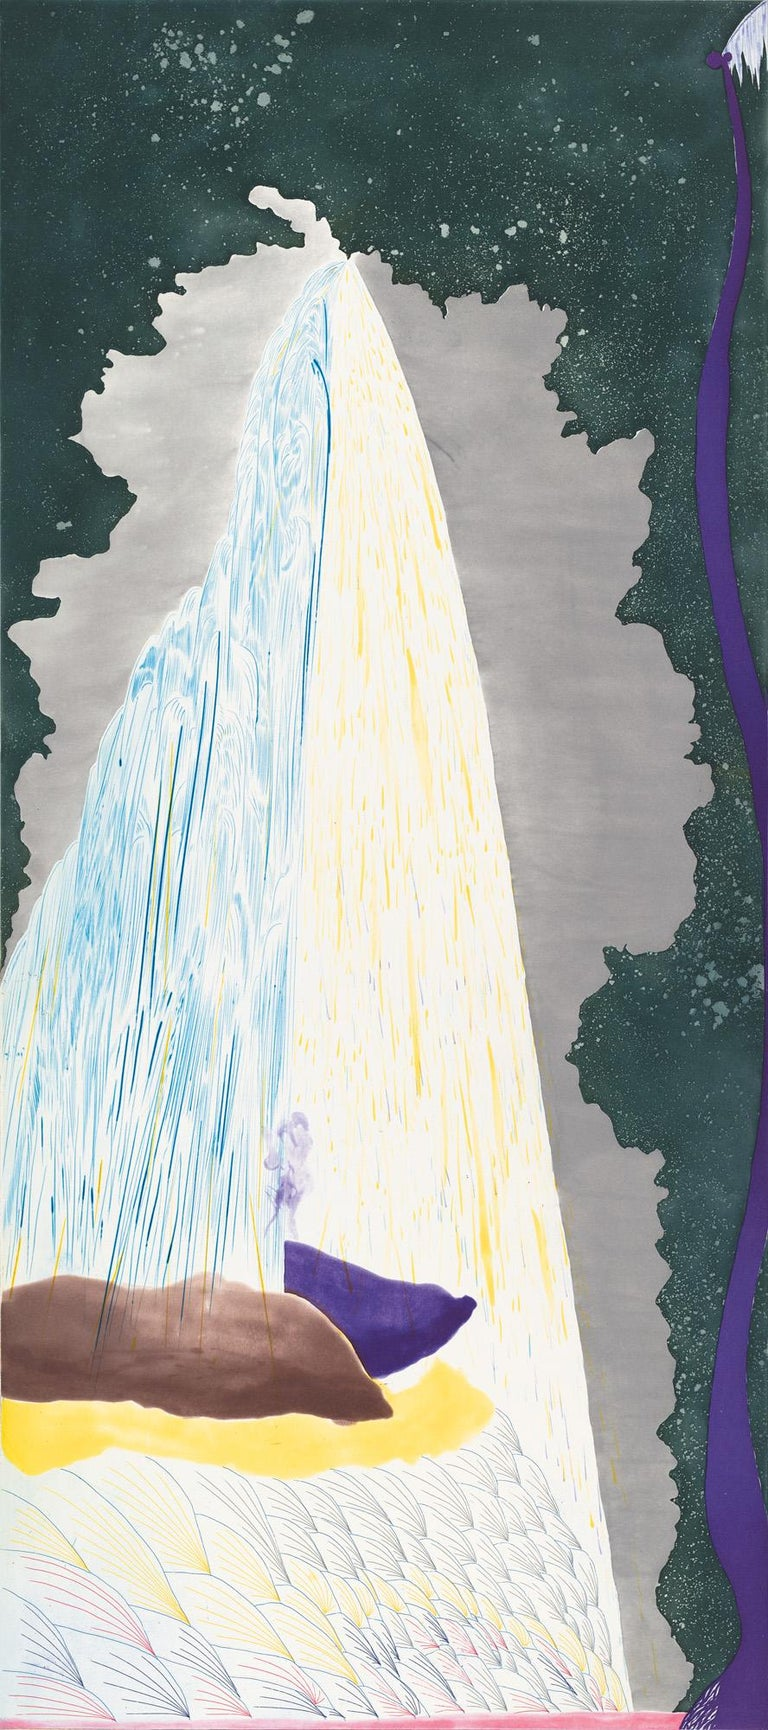 """Color spit bite and sugar lift aquatints with hard ground etching and drypoint. Image size: 45 x 20""""; paper size: 54 x 28"""". Edition 30. Published by Crown Point Press"""